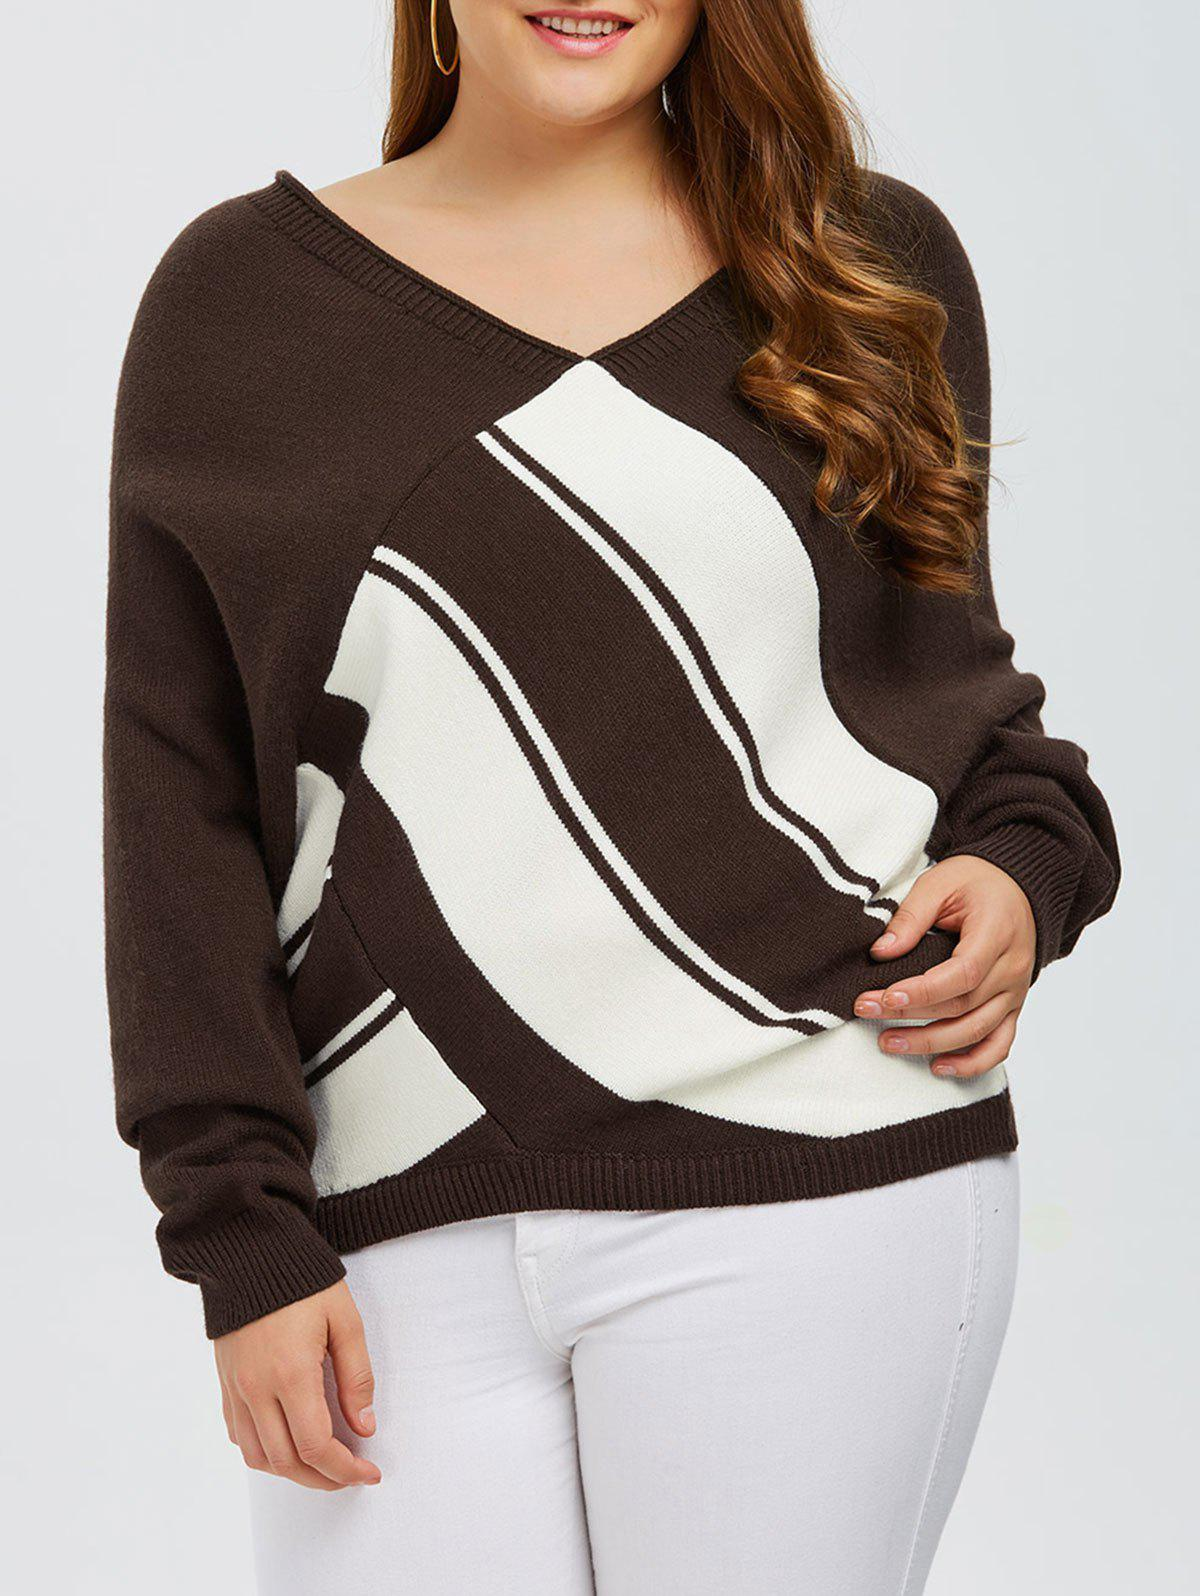 Plus Size V Neck Color Block Sweater ce link mini dp к vga мини displayport патч корд